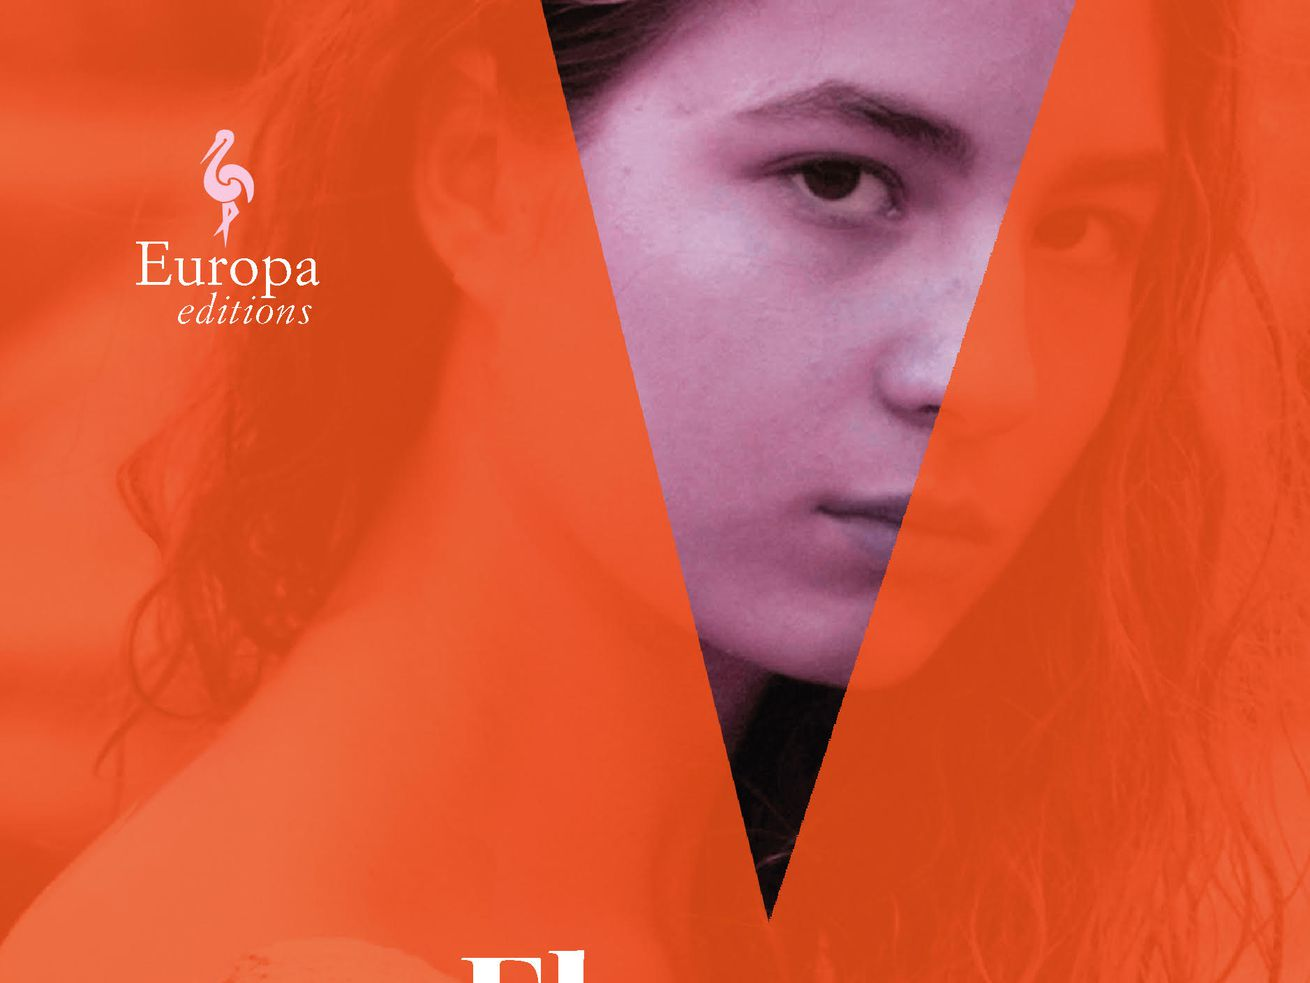 On the cover of this Elena Ferrante novel, a young woman looks out from inside a V of overlaid color.